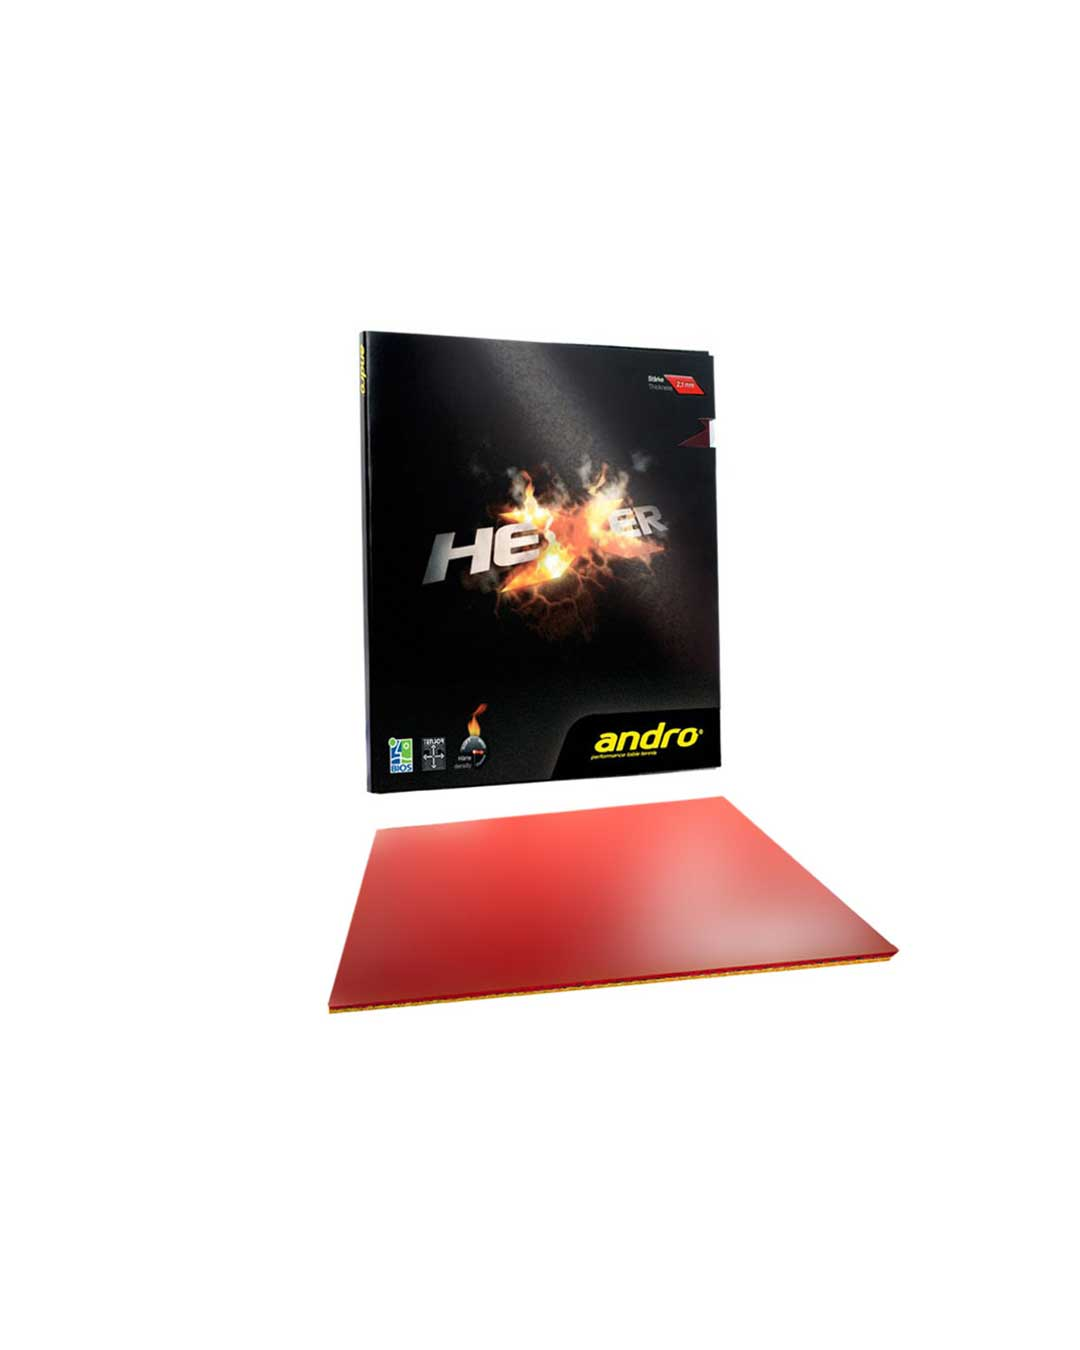 Goma Tenis de Mesa Andro HeXer Red 2.1 mm